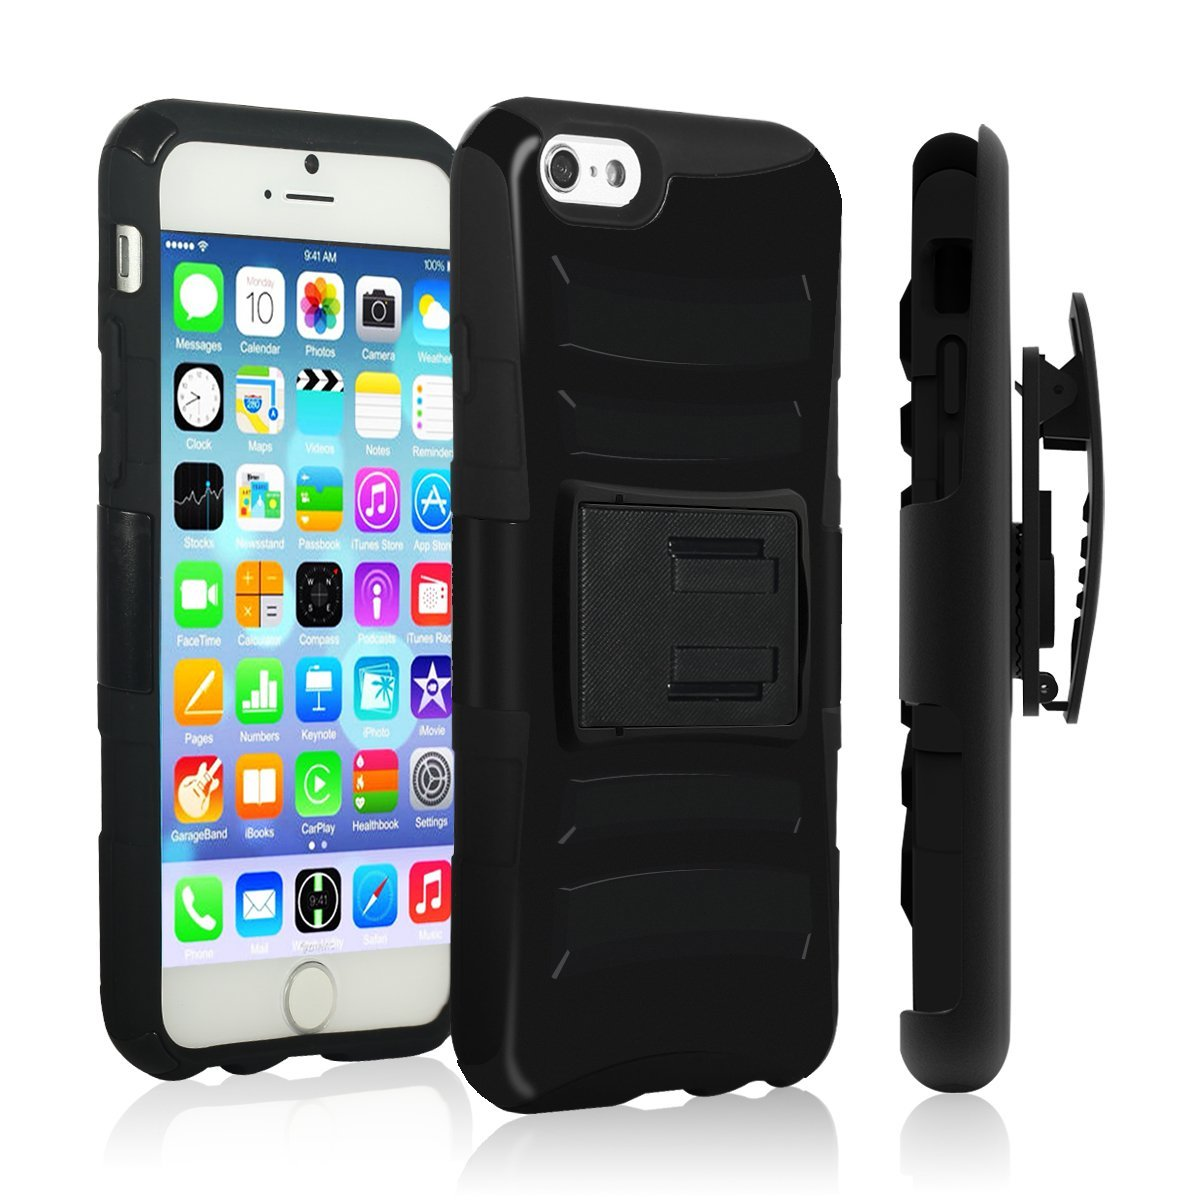 Made for Apple iPhone 6 PLUS/6S PLUS (5.5 inch) Heavy Case,  [Black]  Heavy Duty Dual Layer Hybrid Holster Case with Kickstand and Locking Belt Swivel Clip by Redshield